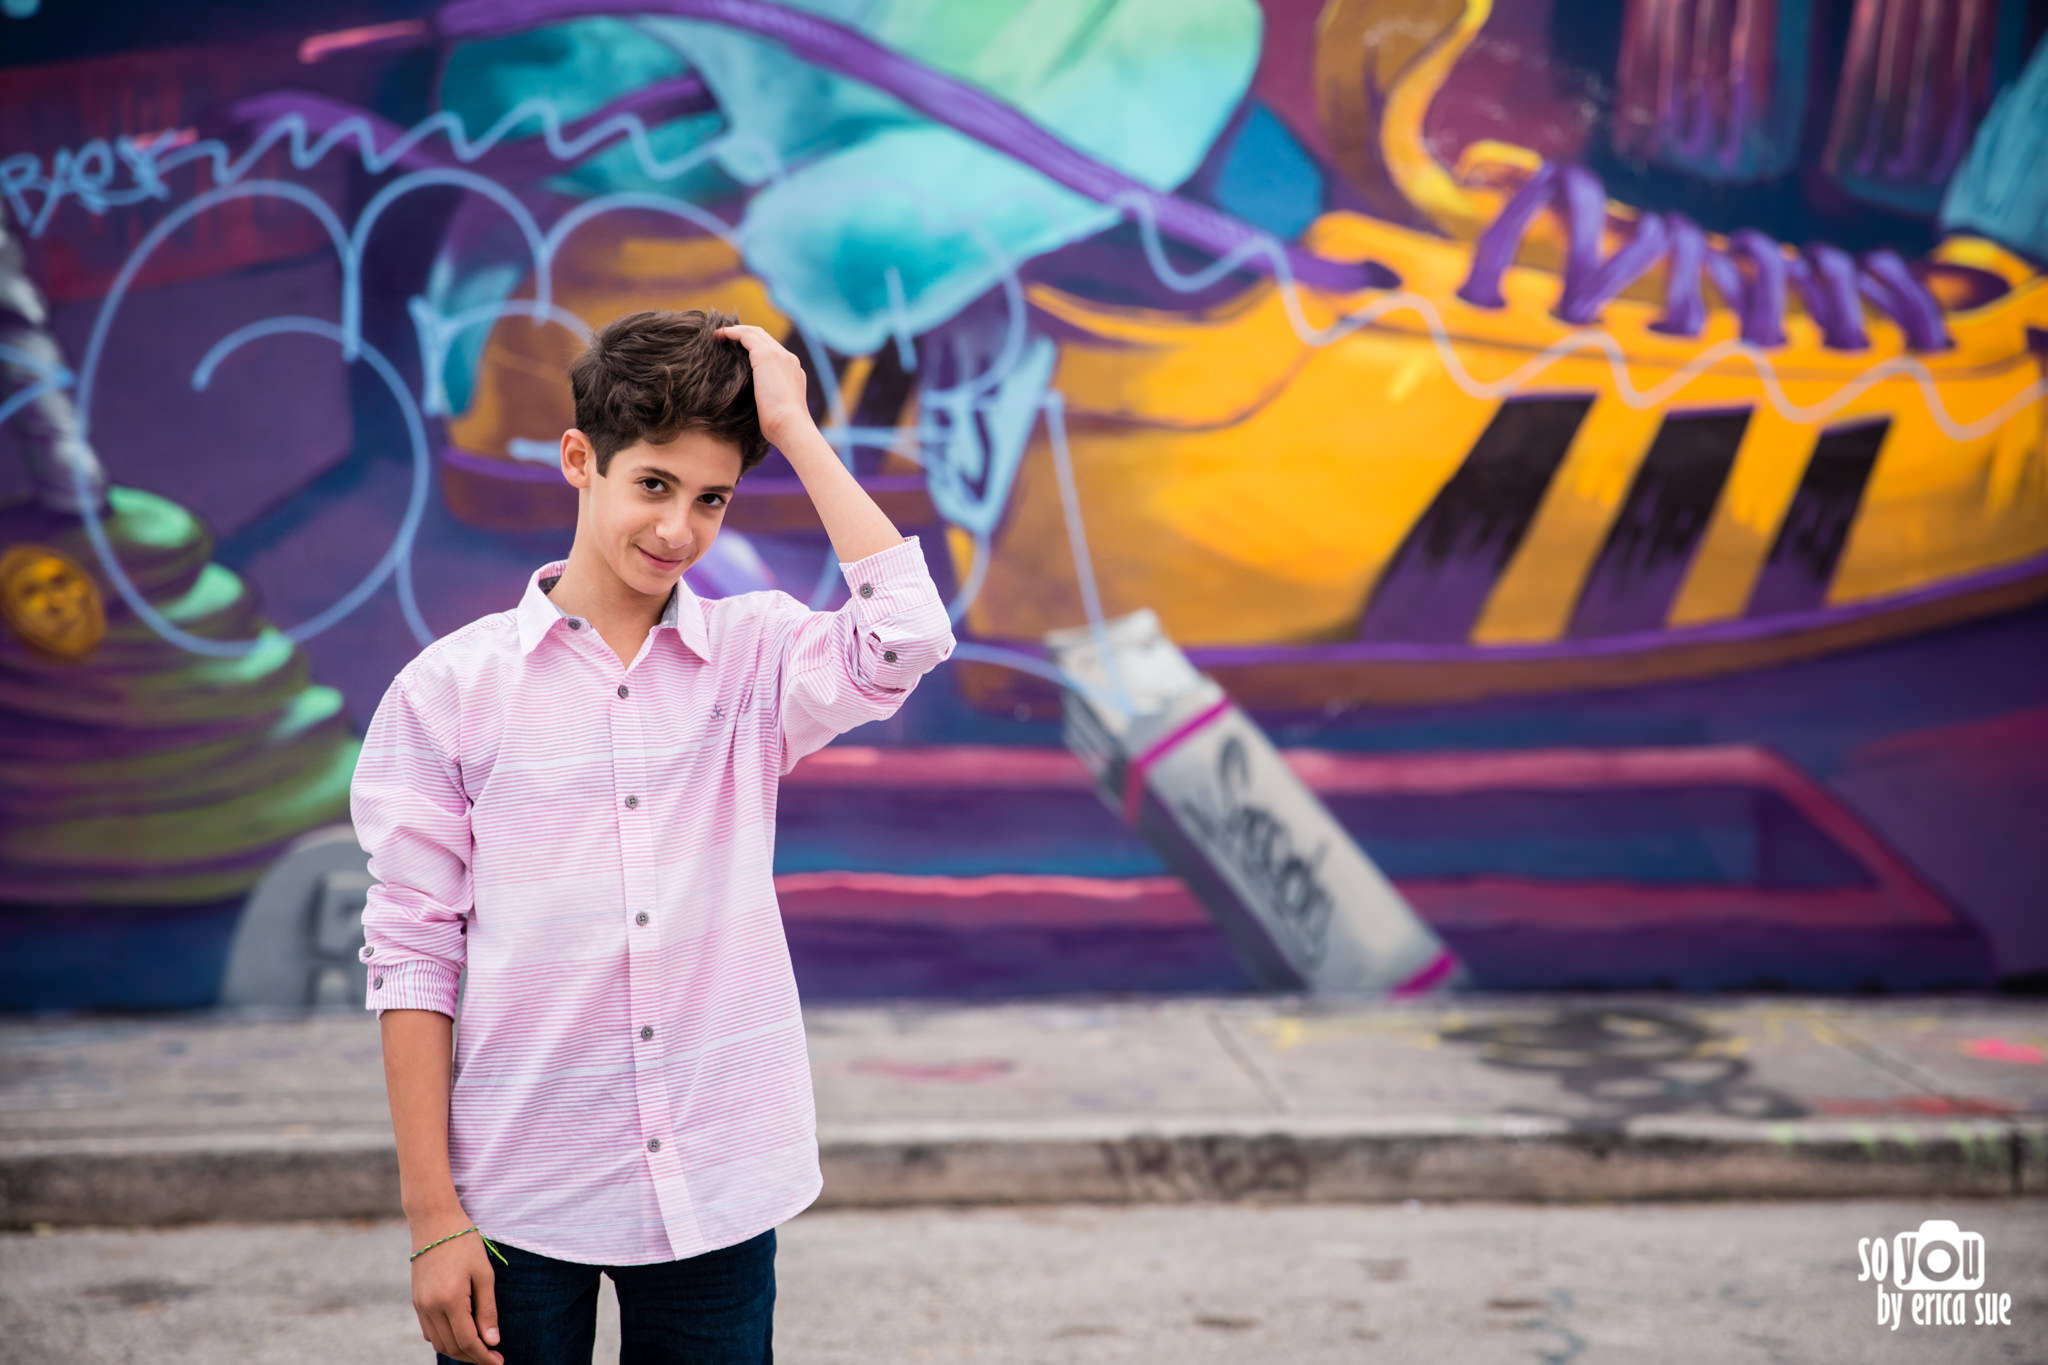 so-you-by-erica-sue-wynwood-miami-photographer-mitzvah-pre-shoot-9918.jpg